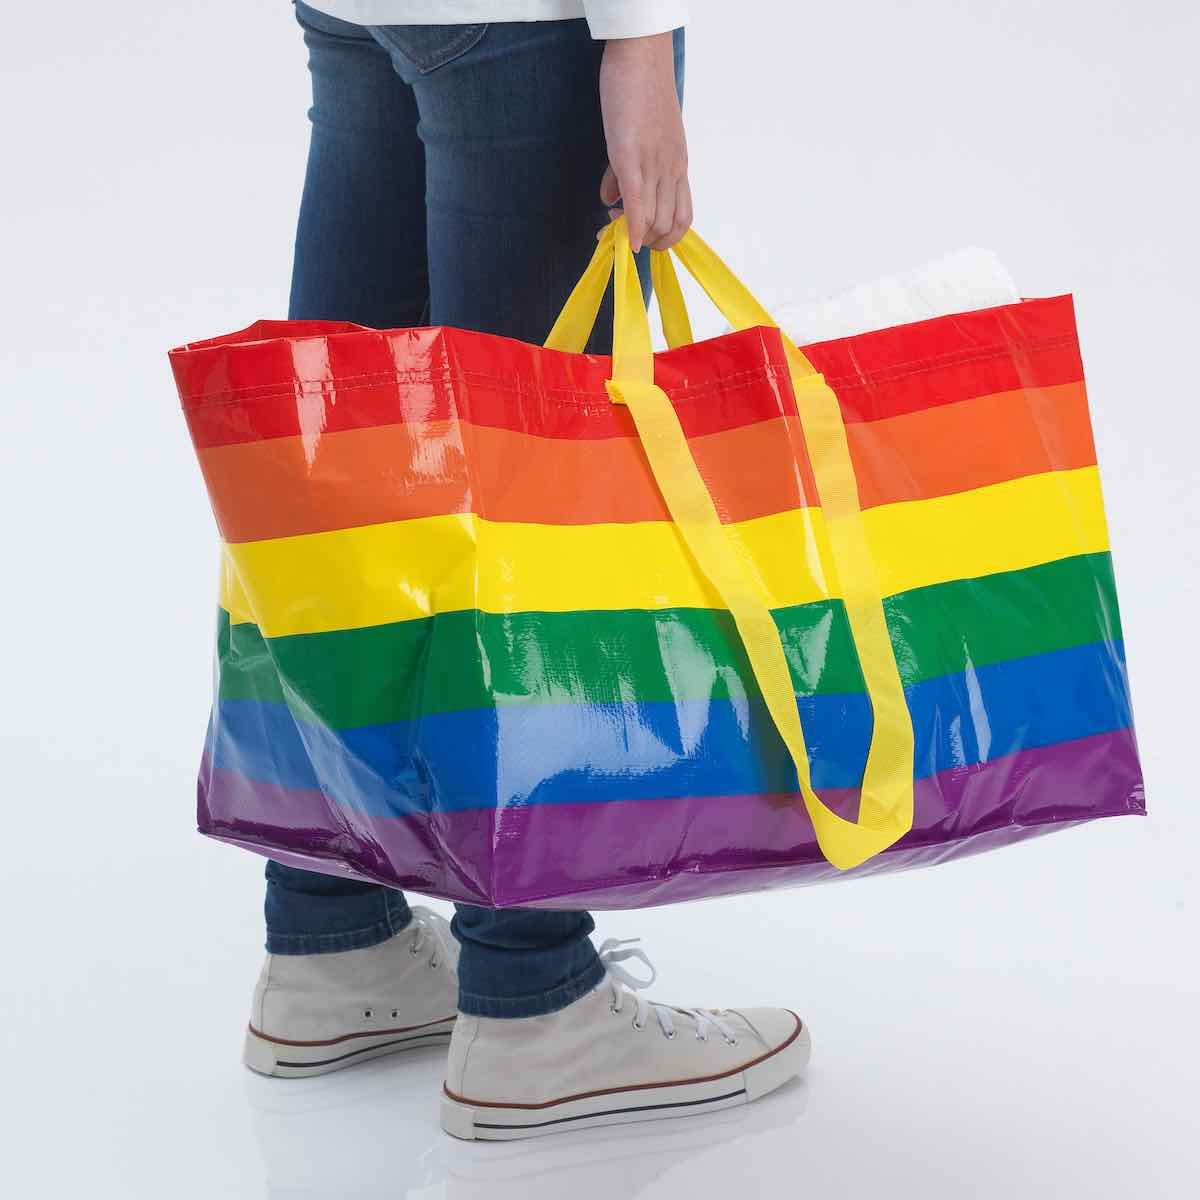 IKEA US rainbow LGBT+ pride bag - Courtesy og IKEA US.